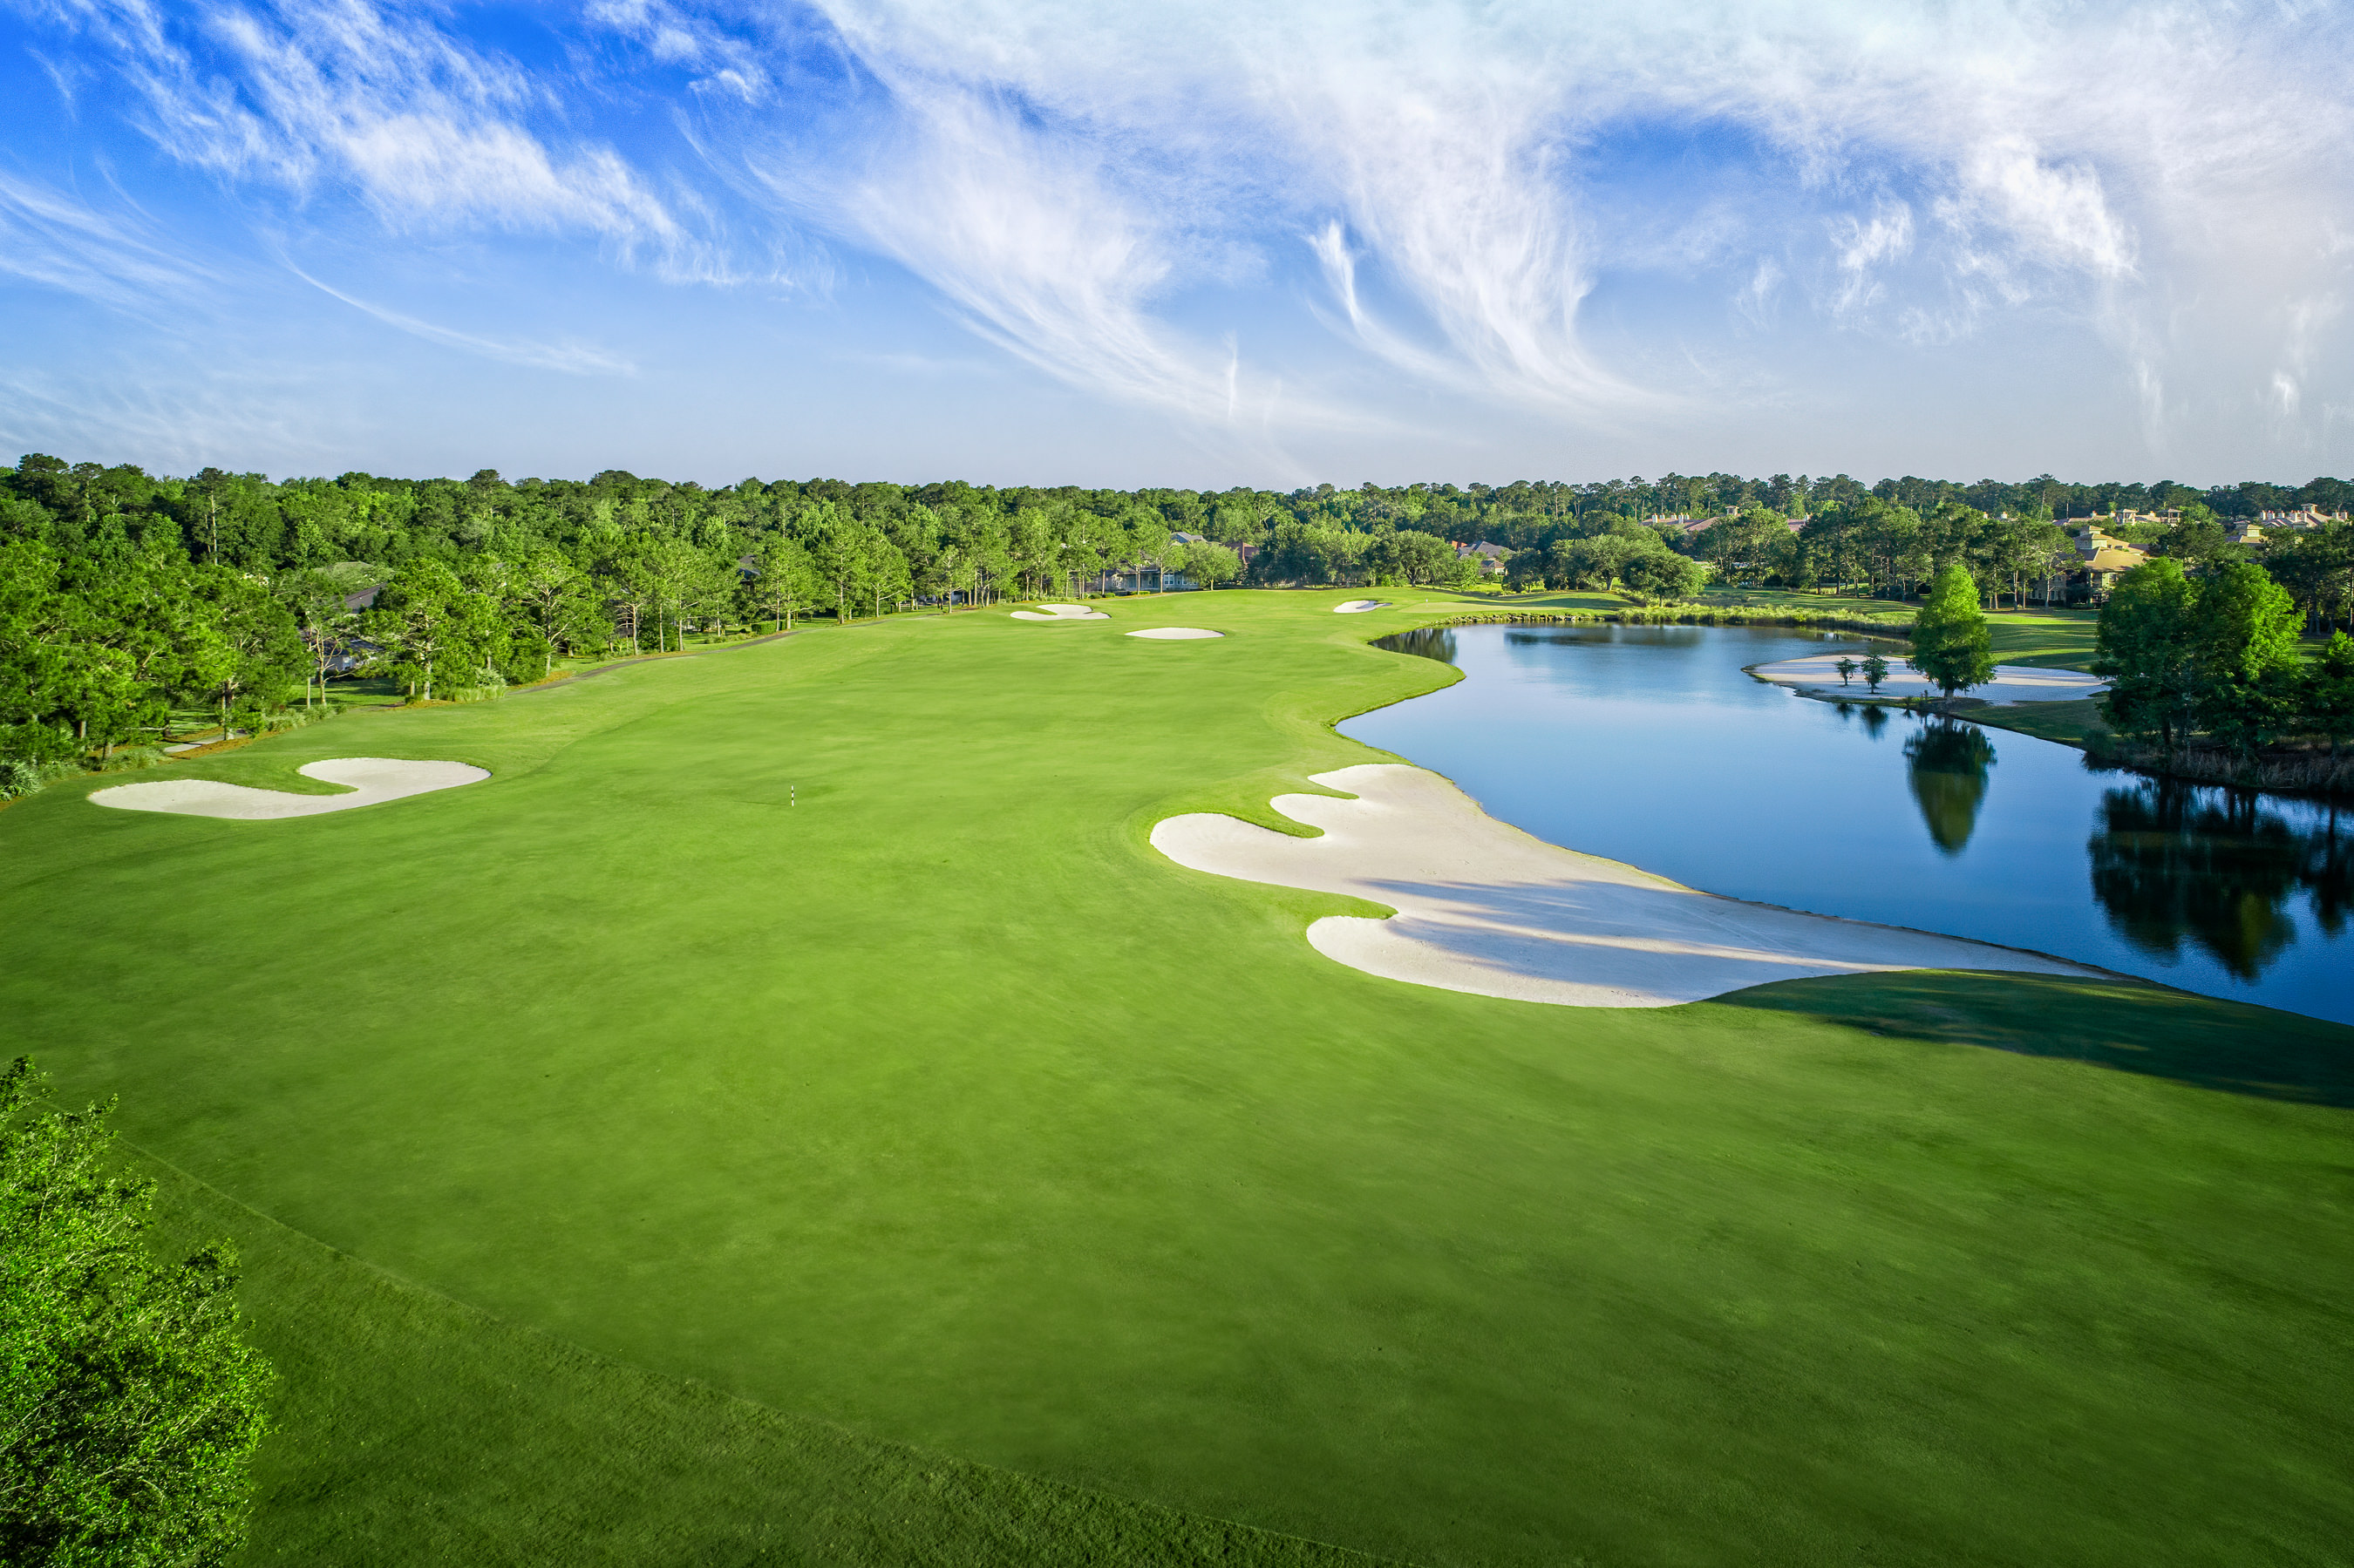 St. John's Golf and Country Club